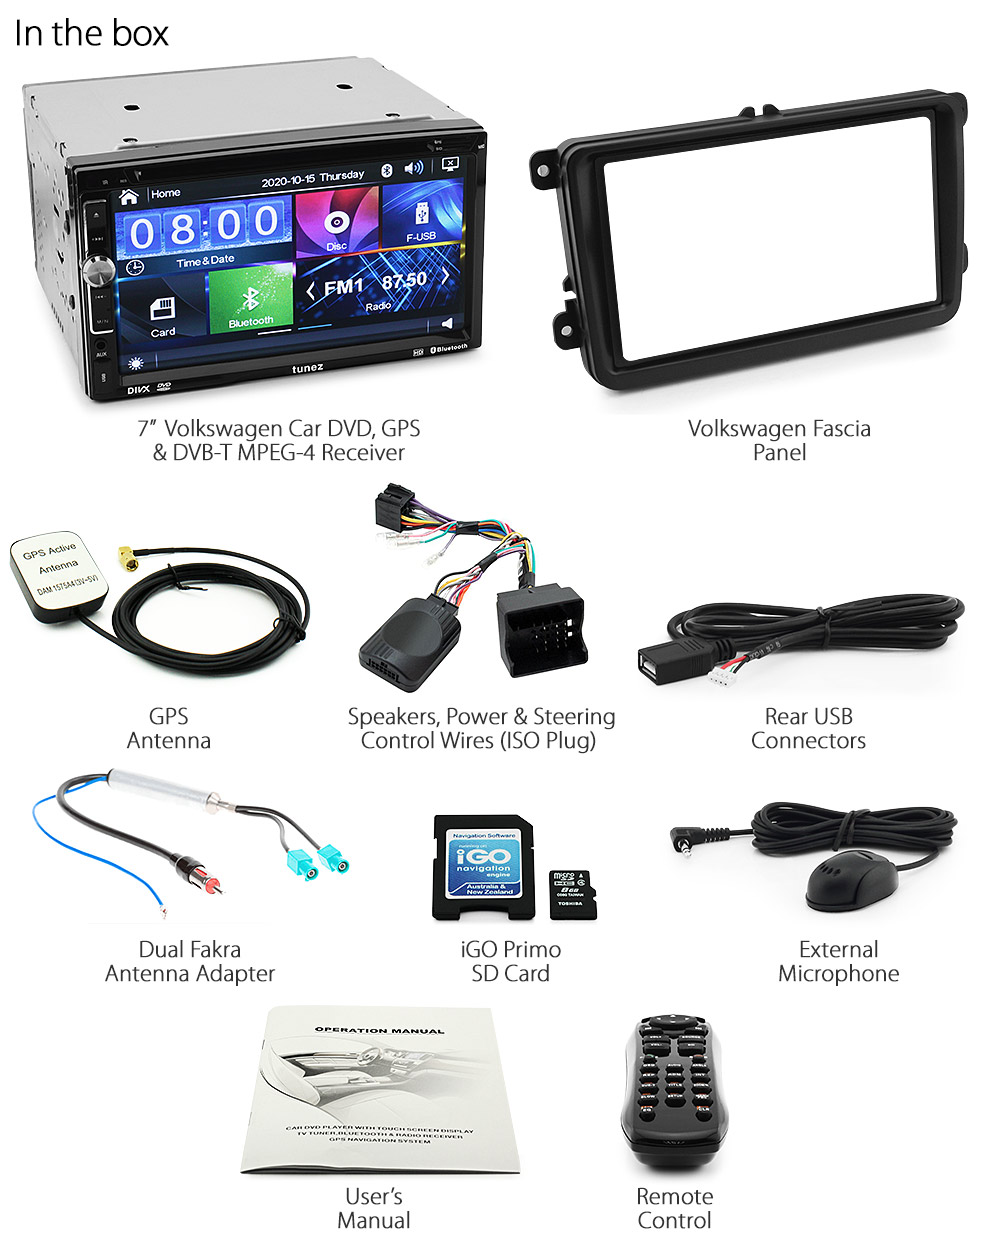 Volkswagen Vw Car Gps Dvd Mp3 Player Digital Tv Head Unit